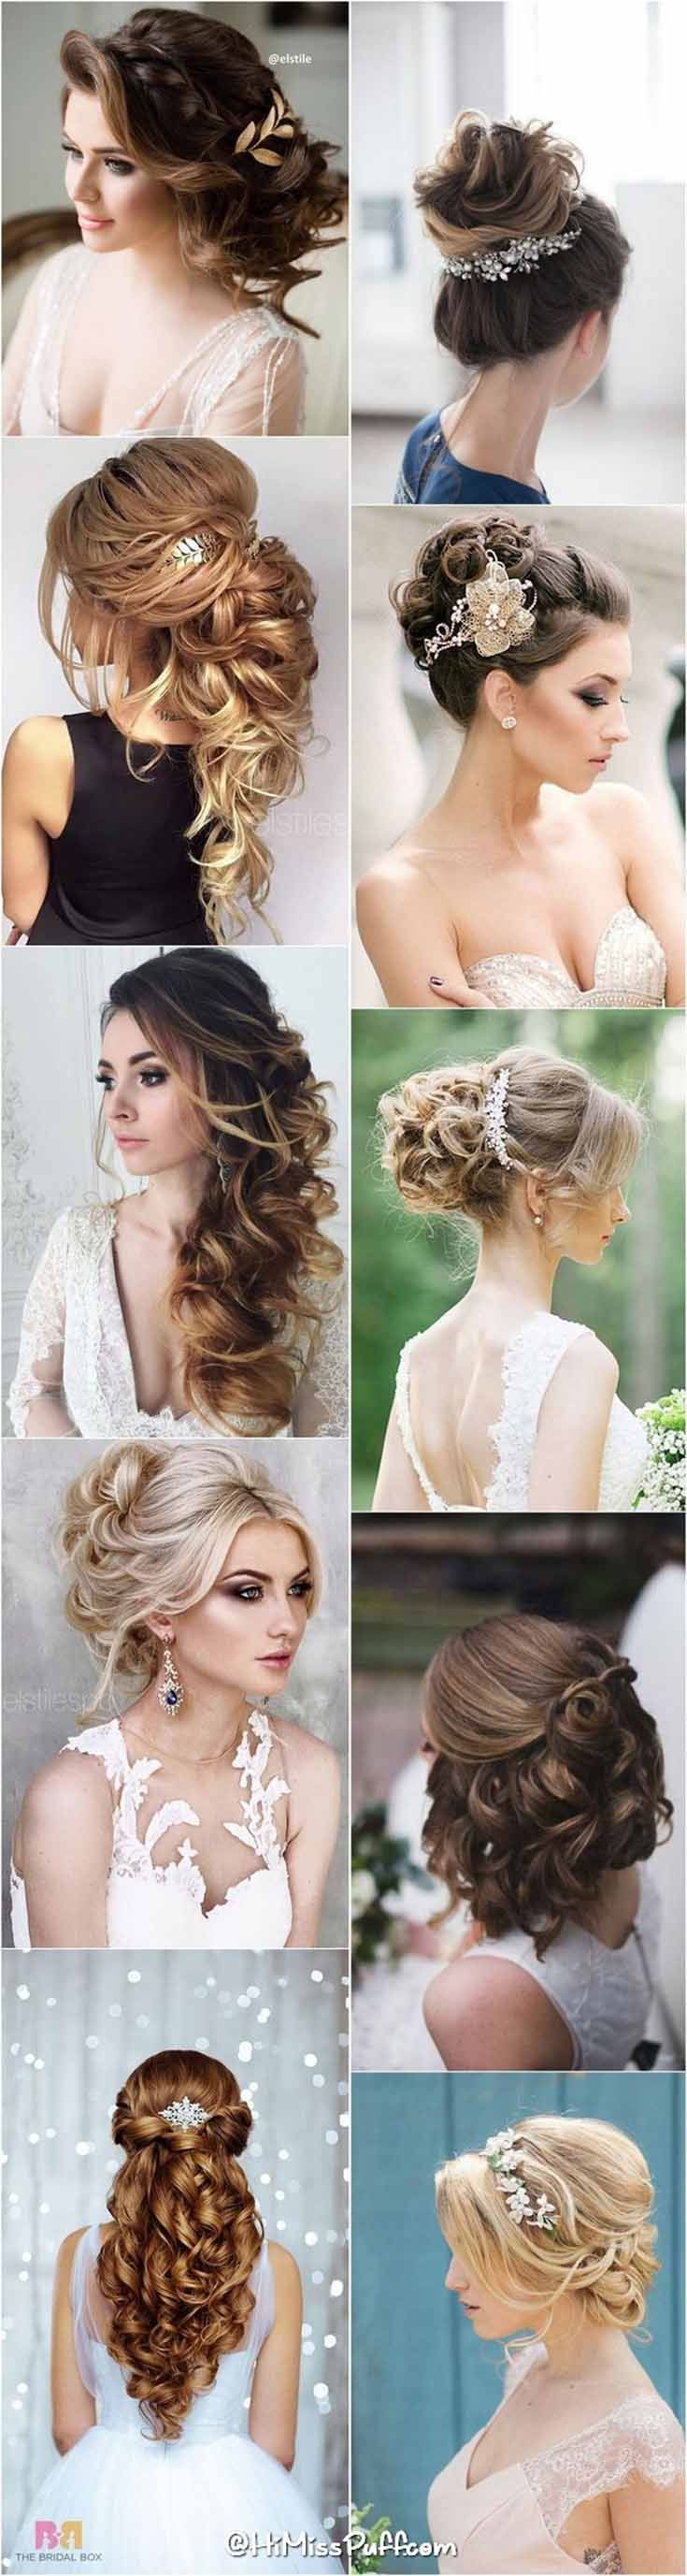 lavish prom hairstyles ideas for long hair prom hairstyles